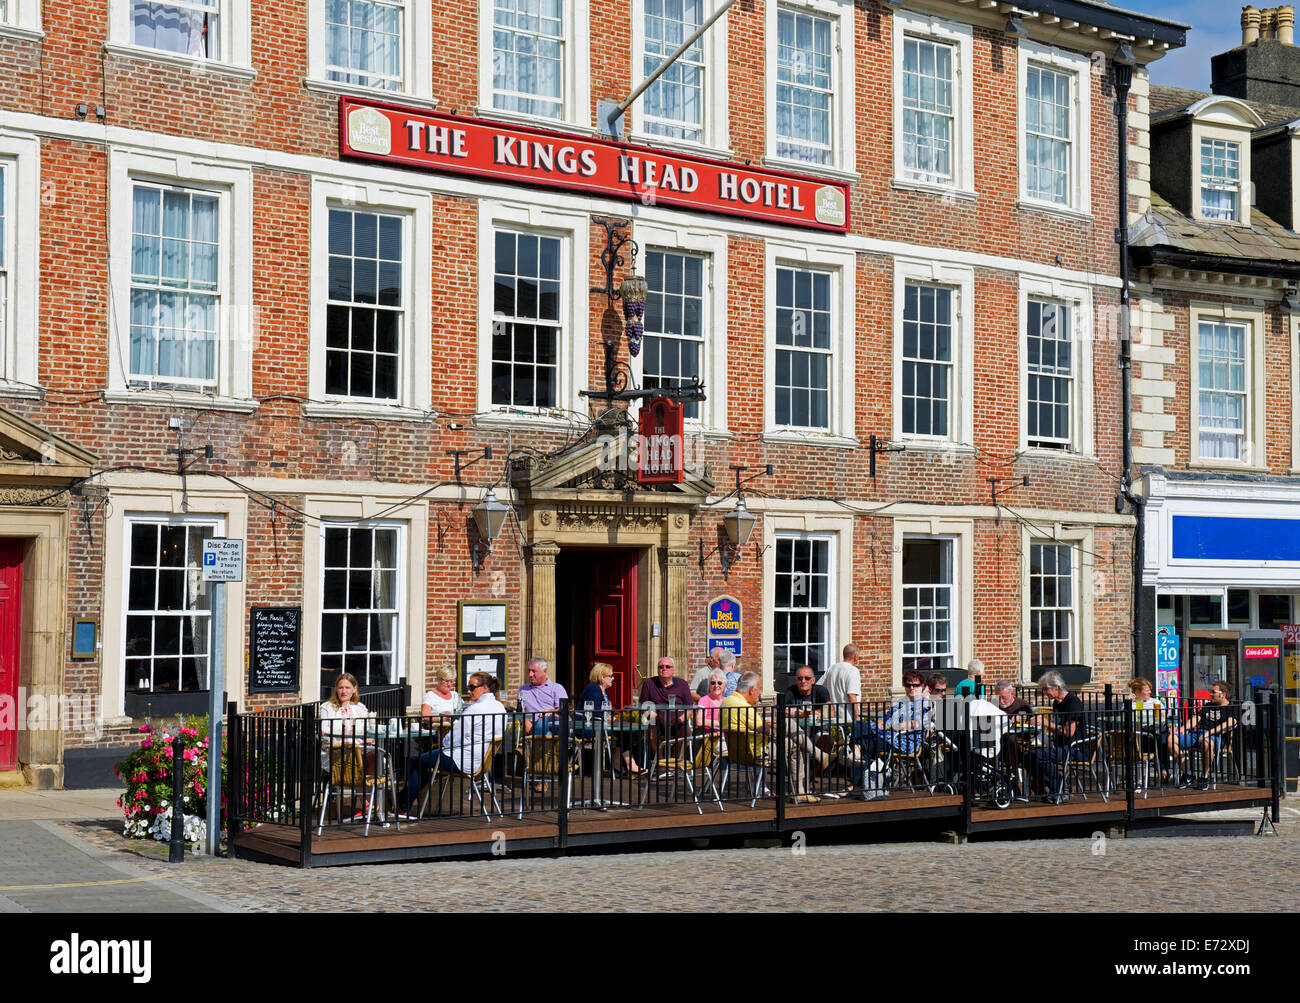 The Kings Head Hotel, in the Market Square, Richmond, North yorkshire, England UK - Stock Image